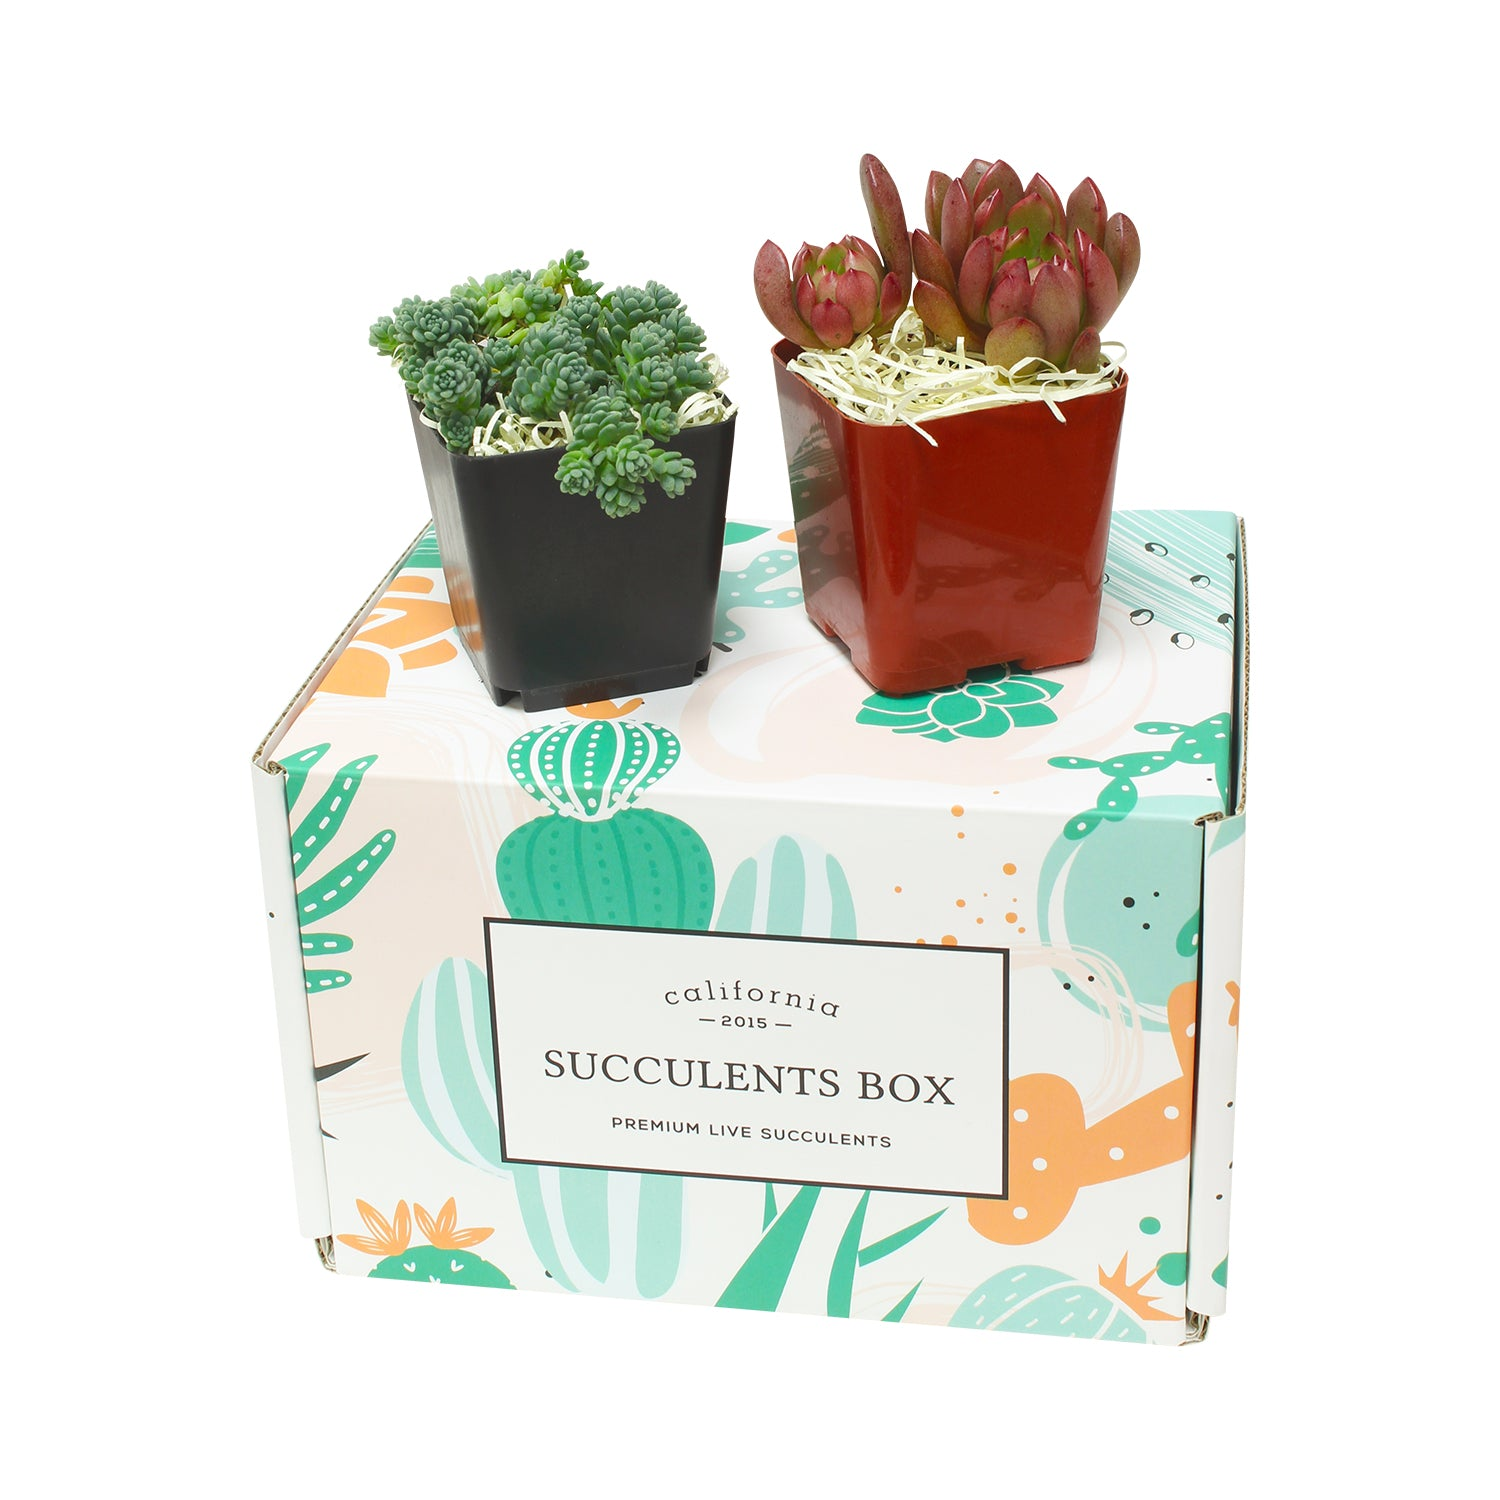 Succulent and Cactus Subscription Boxes monthly